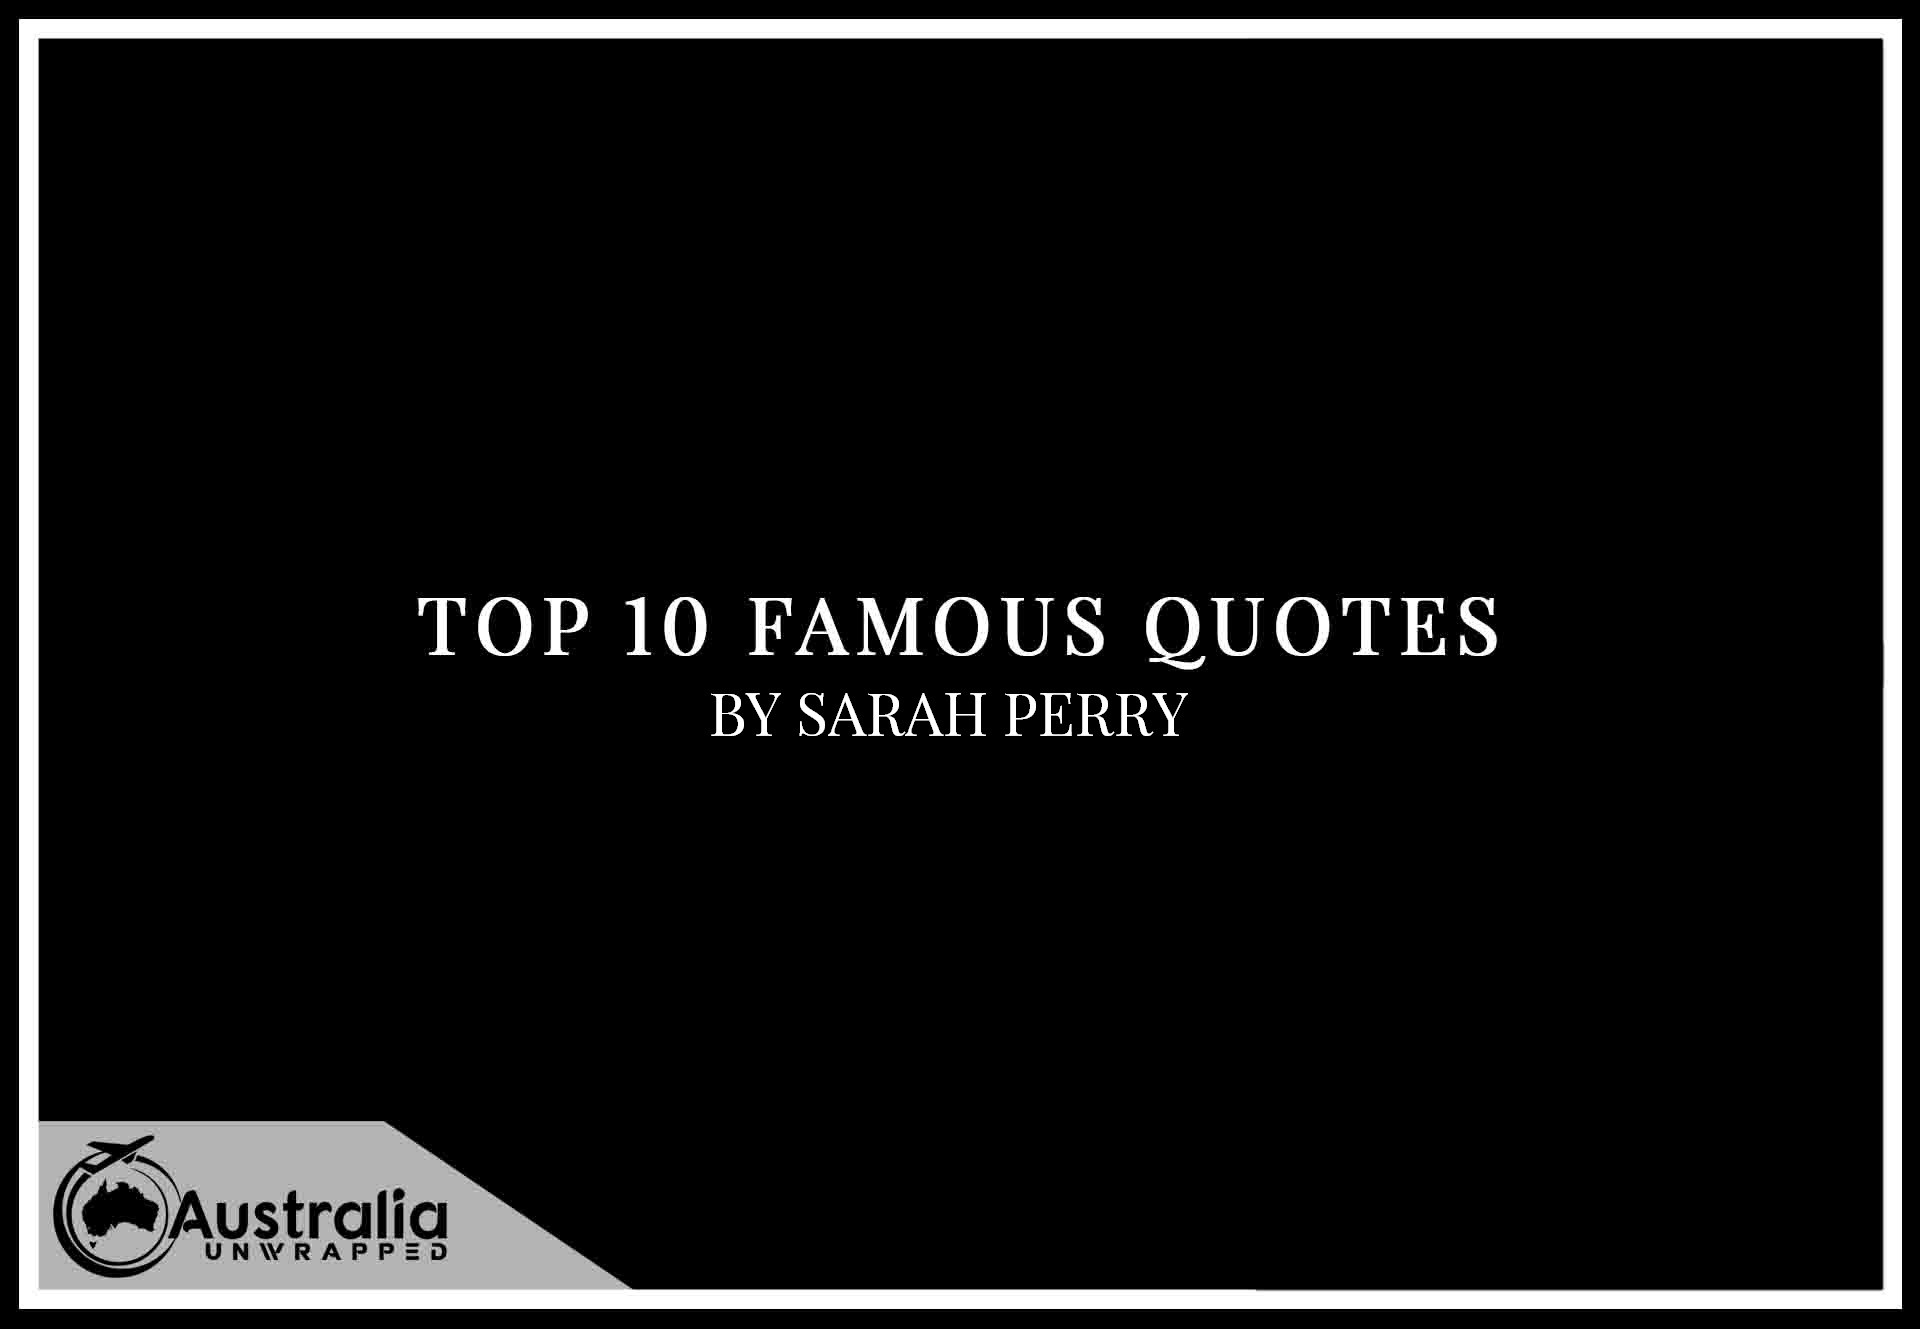 Top 10 Famous Quotes by Author Sarah Perry